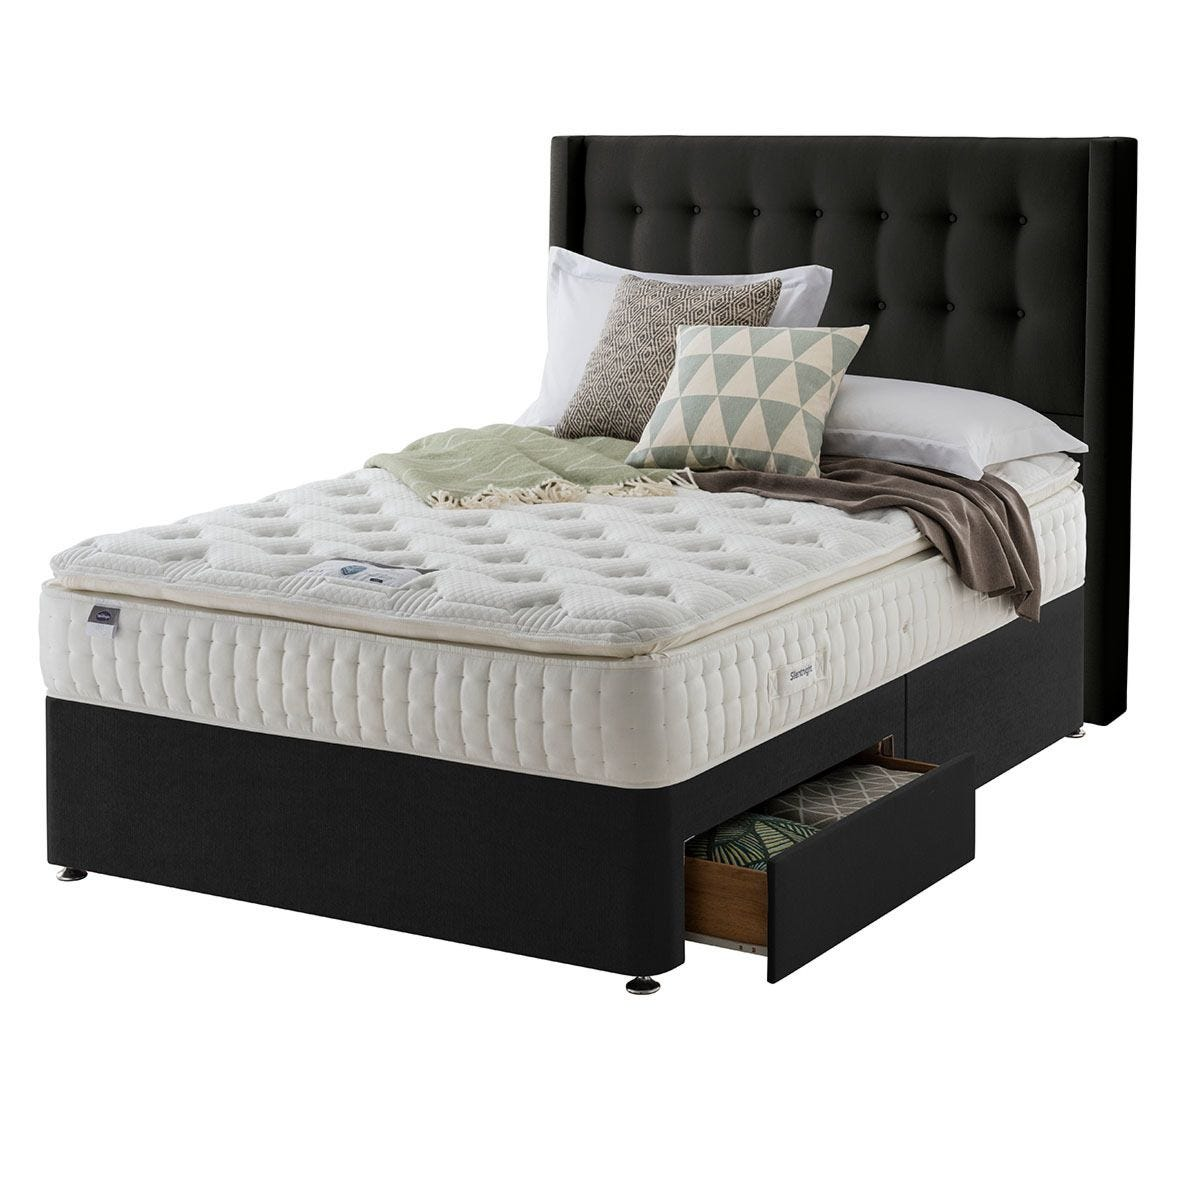 Silentnight Mirapocket Latex 1000 2-Drawer Divan Bed - Ebony King